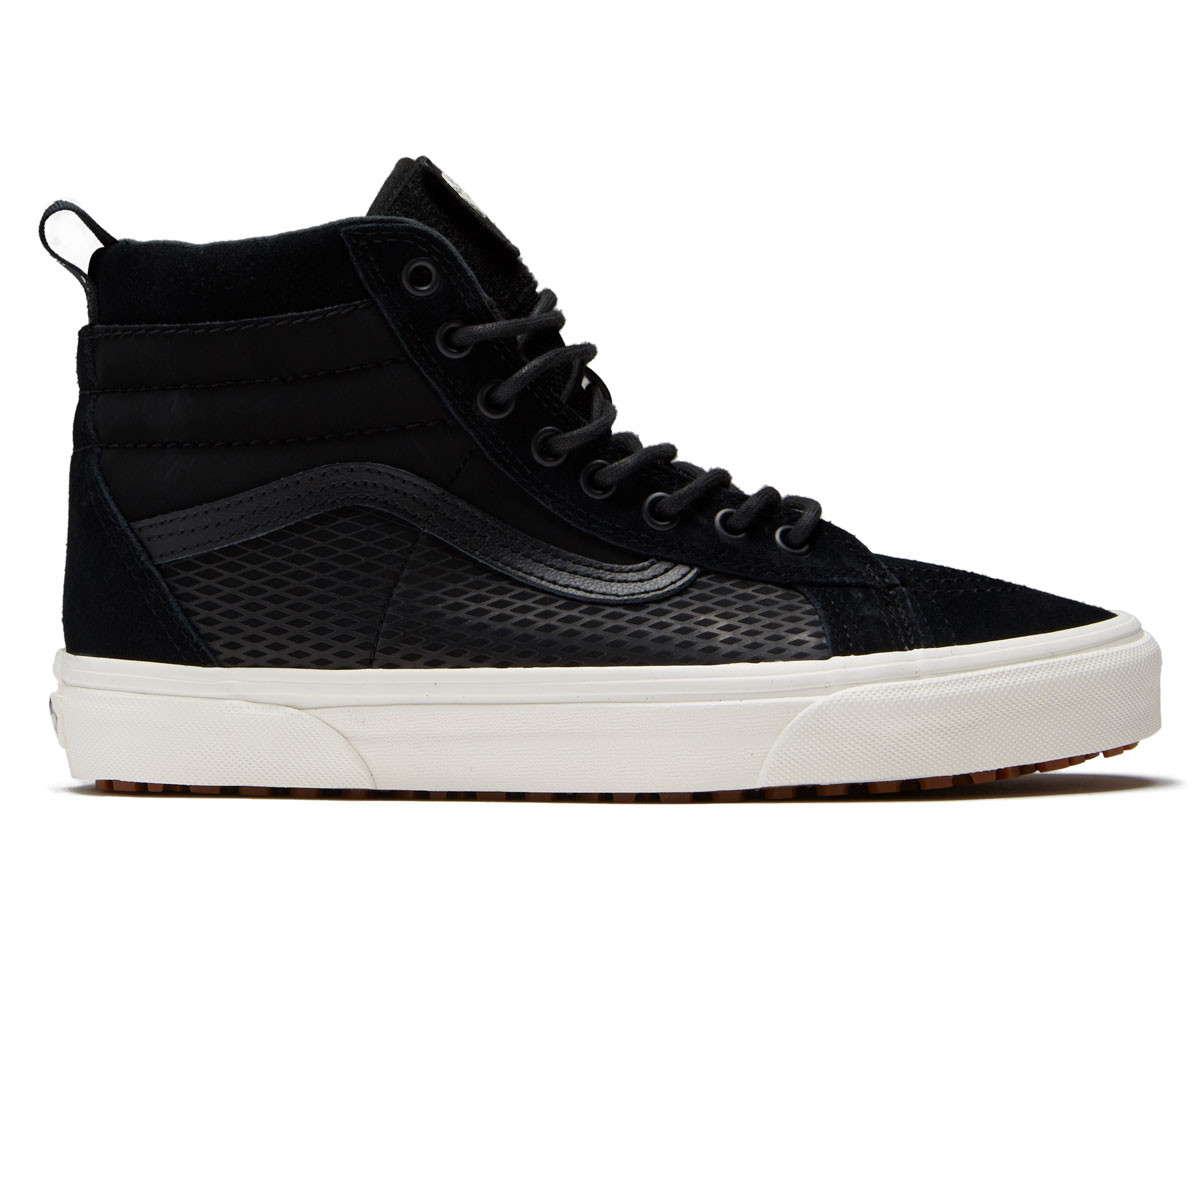 d072f3496b Vans SK8-Hi 46 MTE DX Shoes - Tact Black - 8.0